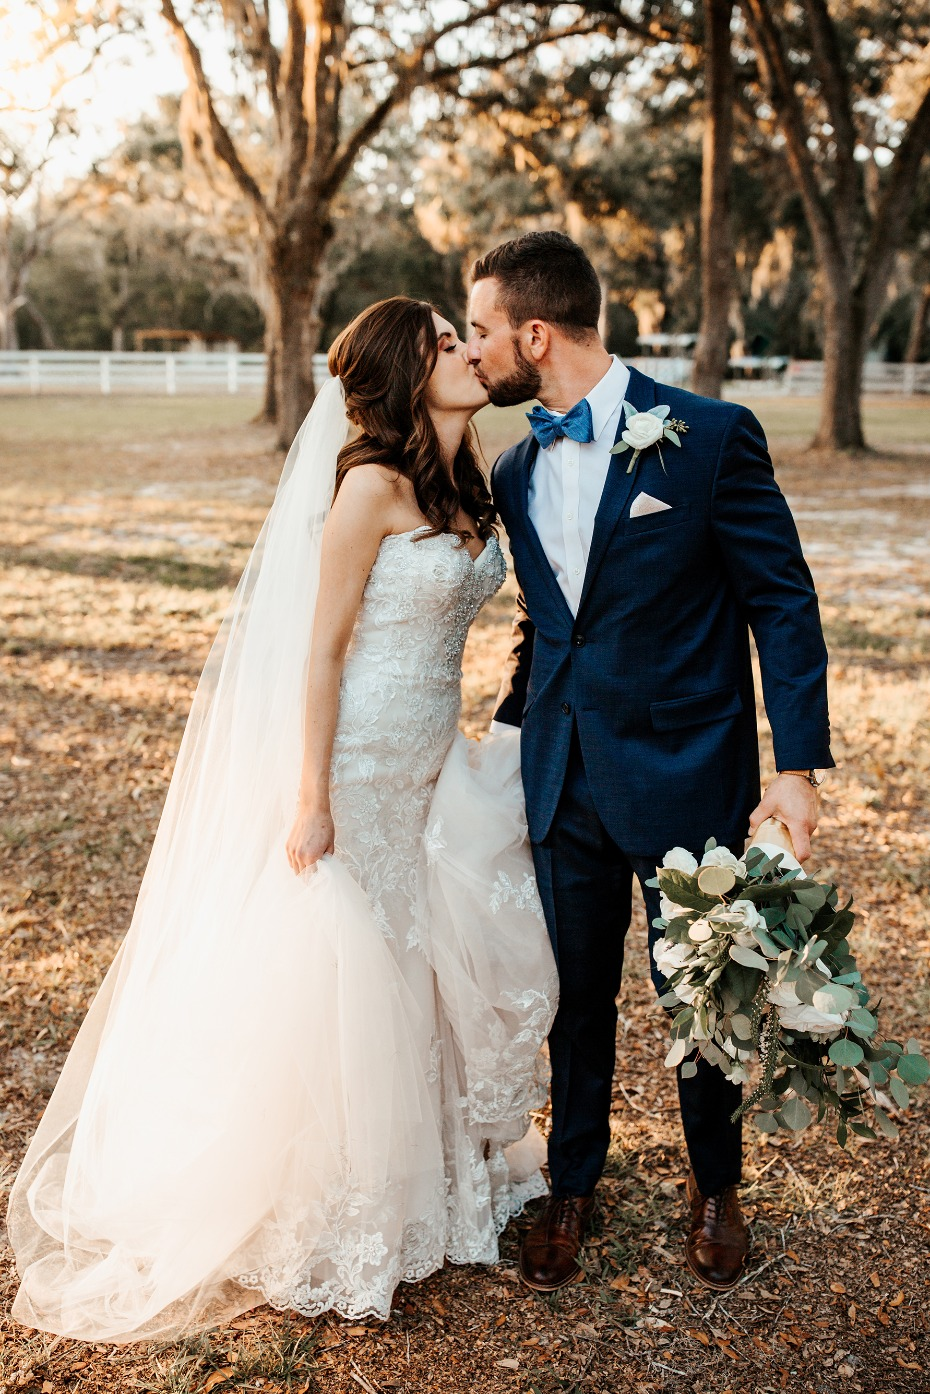 Whimsical outdoor wedding in Florida ya'll